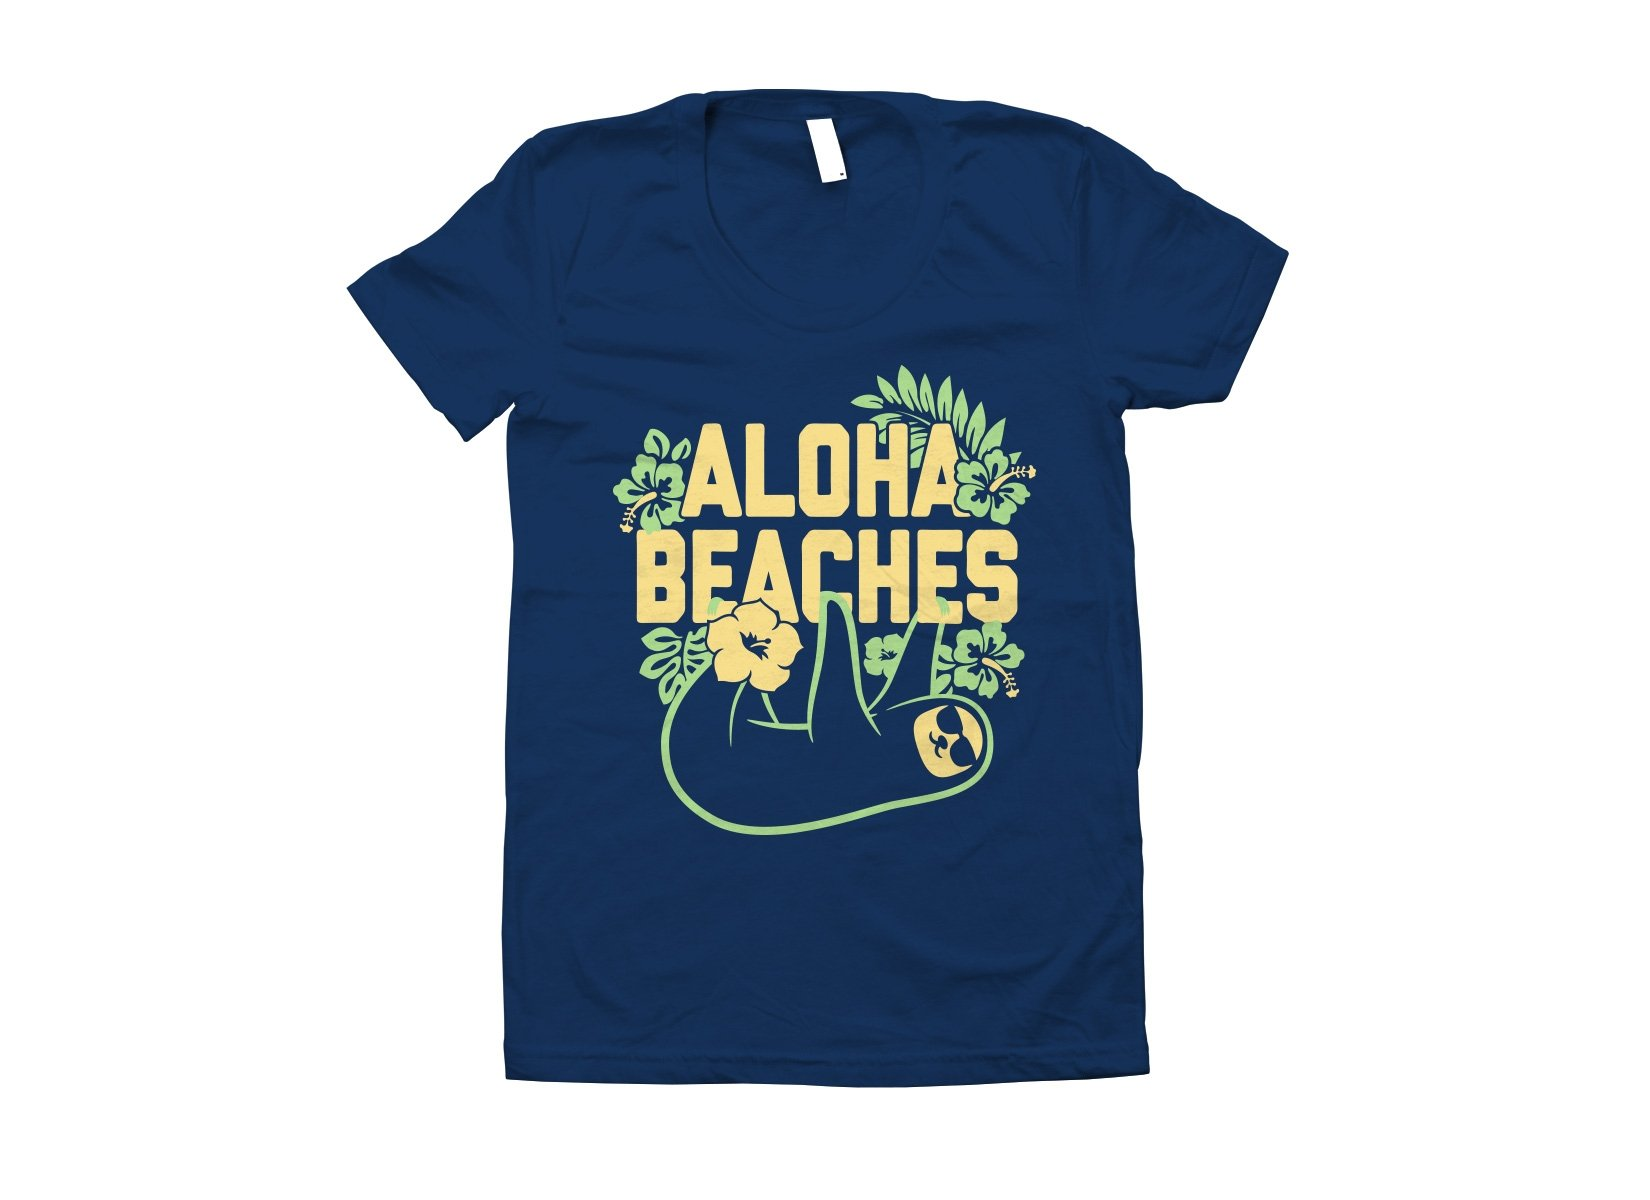 Aloha Beaches on Juniors T-Shirt